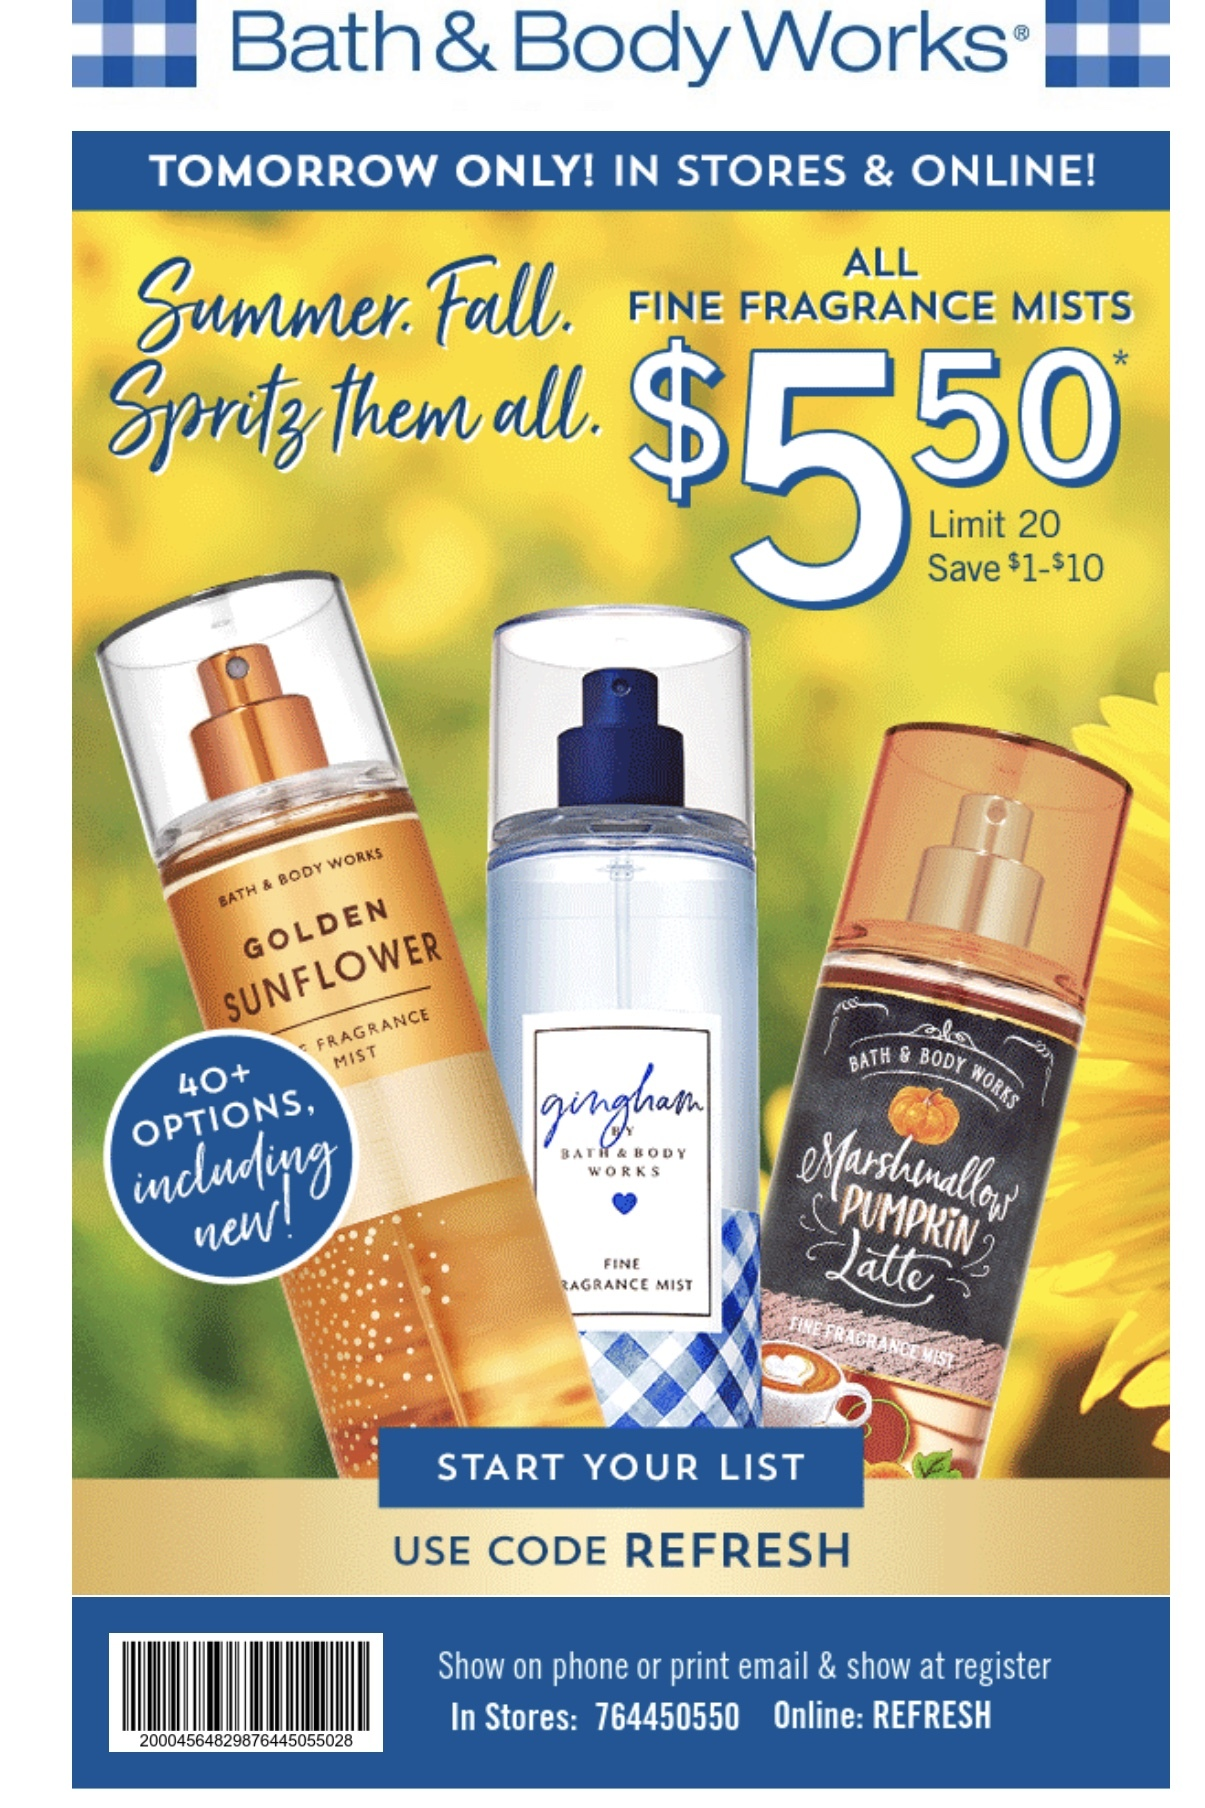 Bath and Body Works Coupon: $5.50 Fragrance Mists